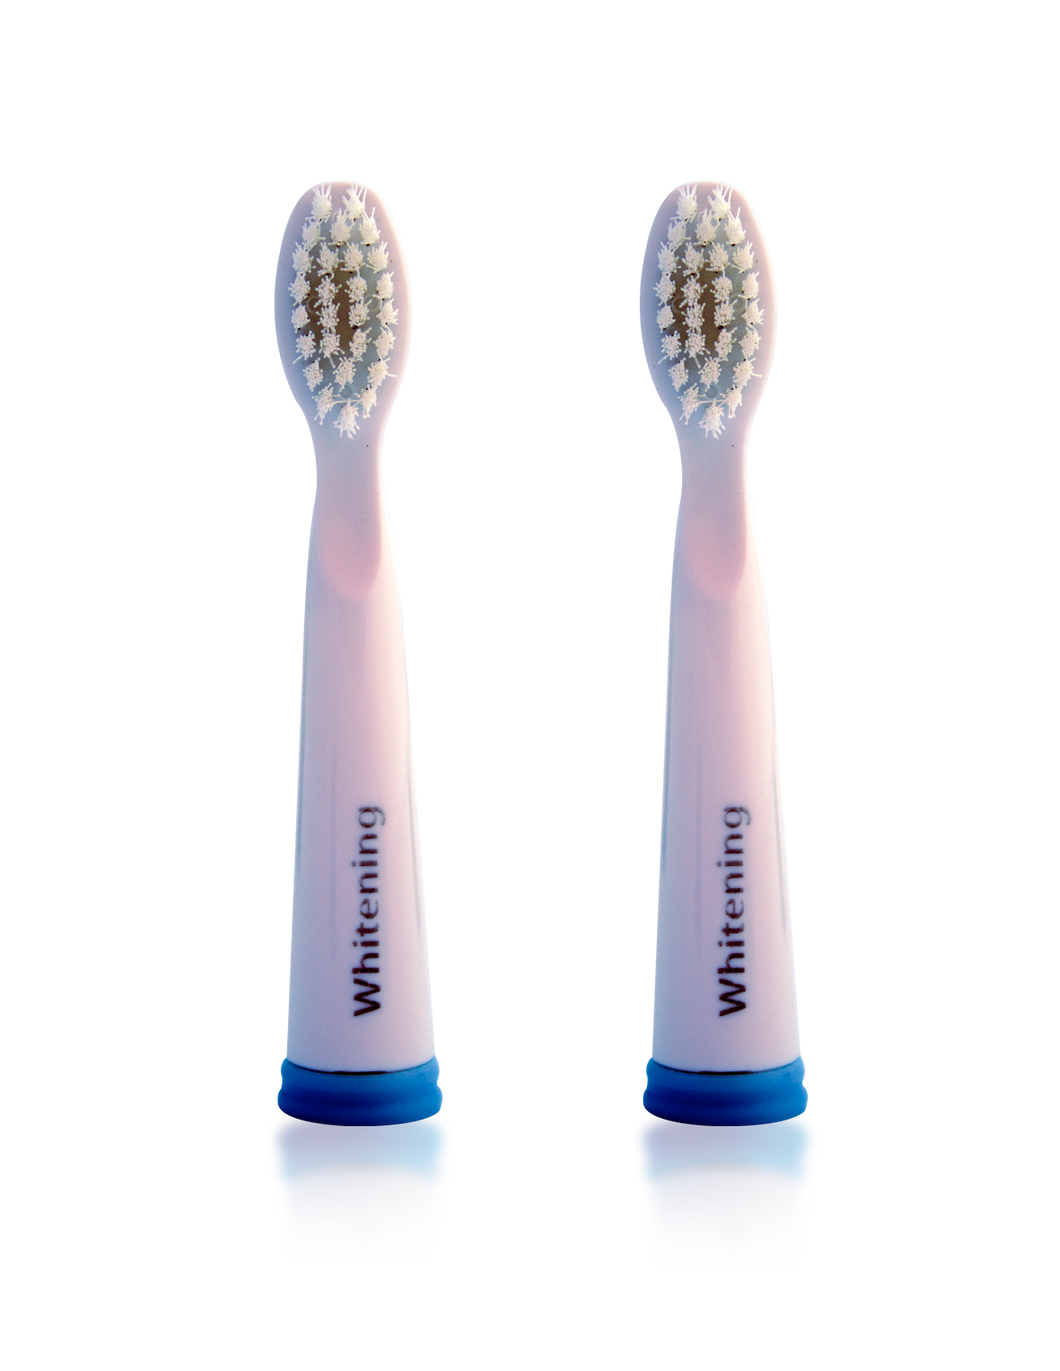 Soniclean Whitening Replacement Brush Heads - (Pro 2000, 3000, 5000,CVS Pro Whitening, Pro White, Sonic Clean)